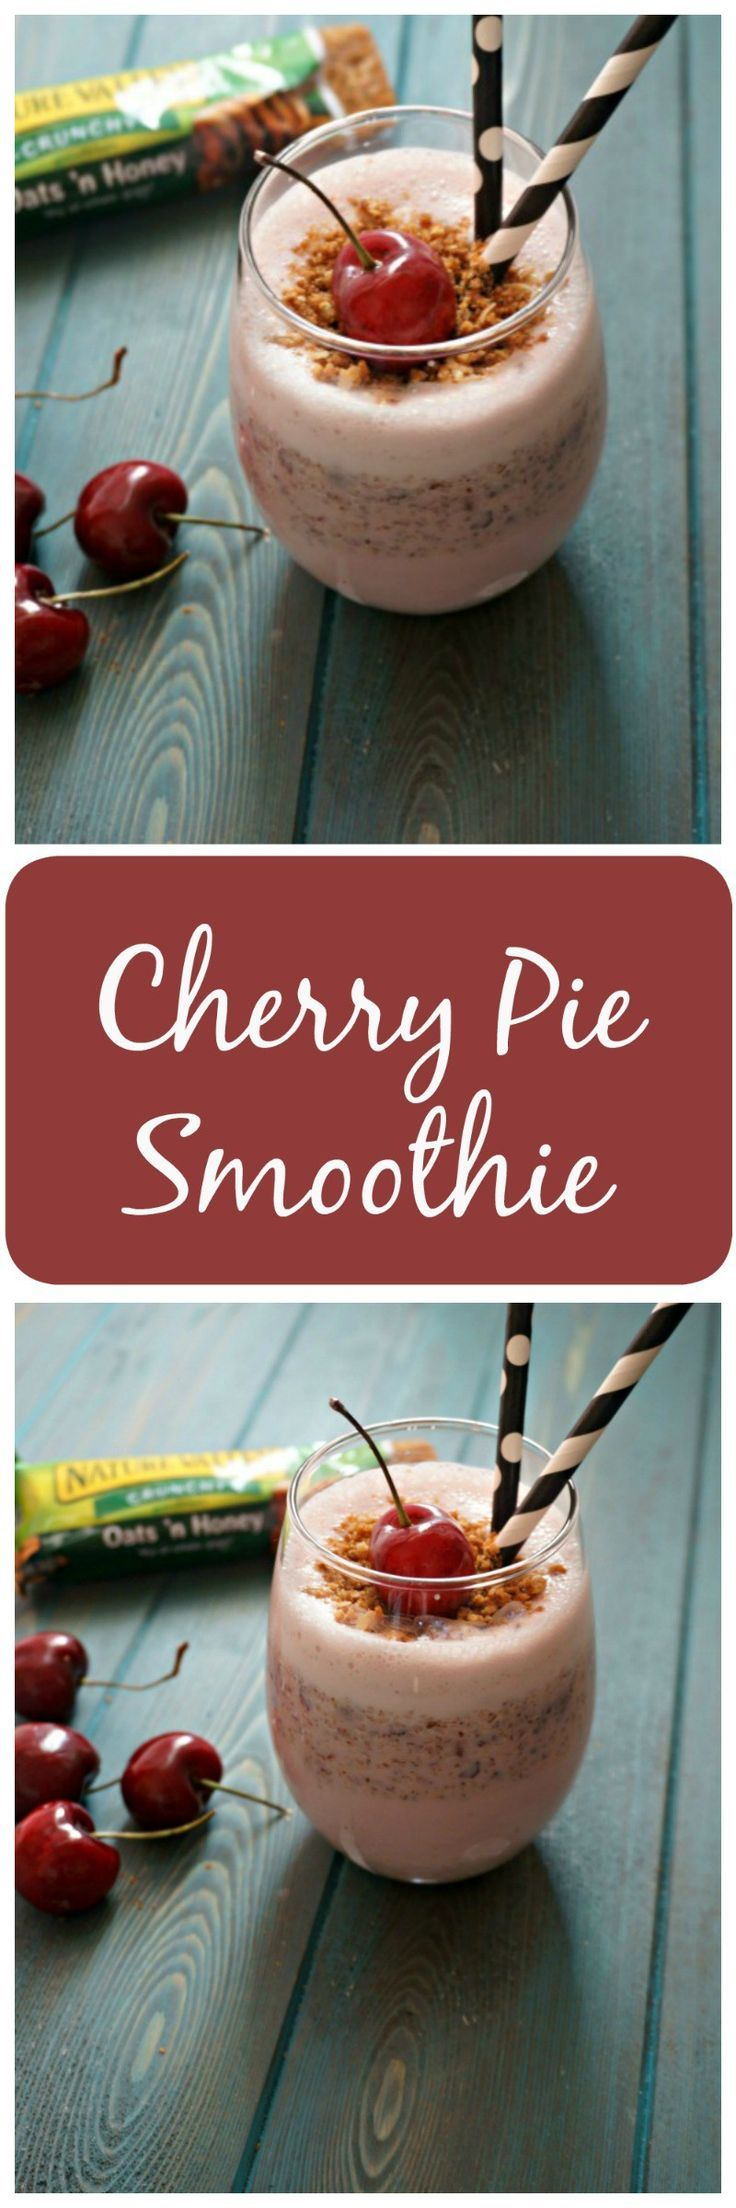 "Cherry Pie Smoothie: All the flavors of a cherry pie in smoothie form complete with a crust ""crumble"". #BeGreatOutThere #IC #AD @NatureValley"